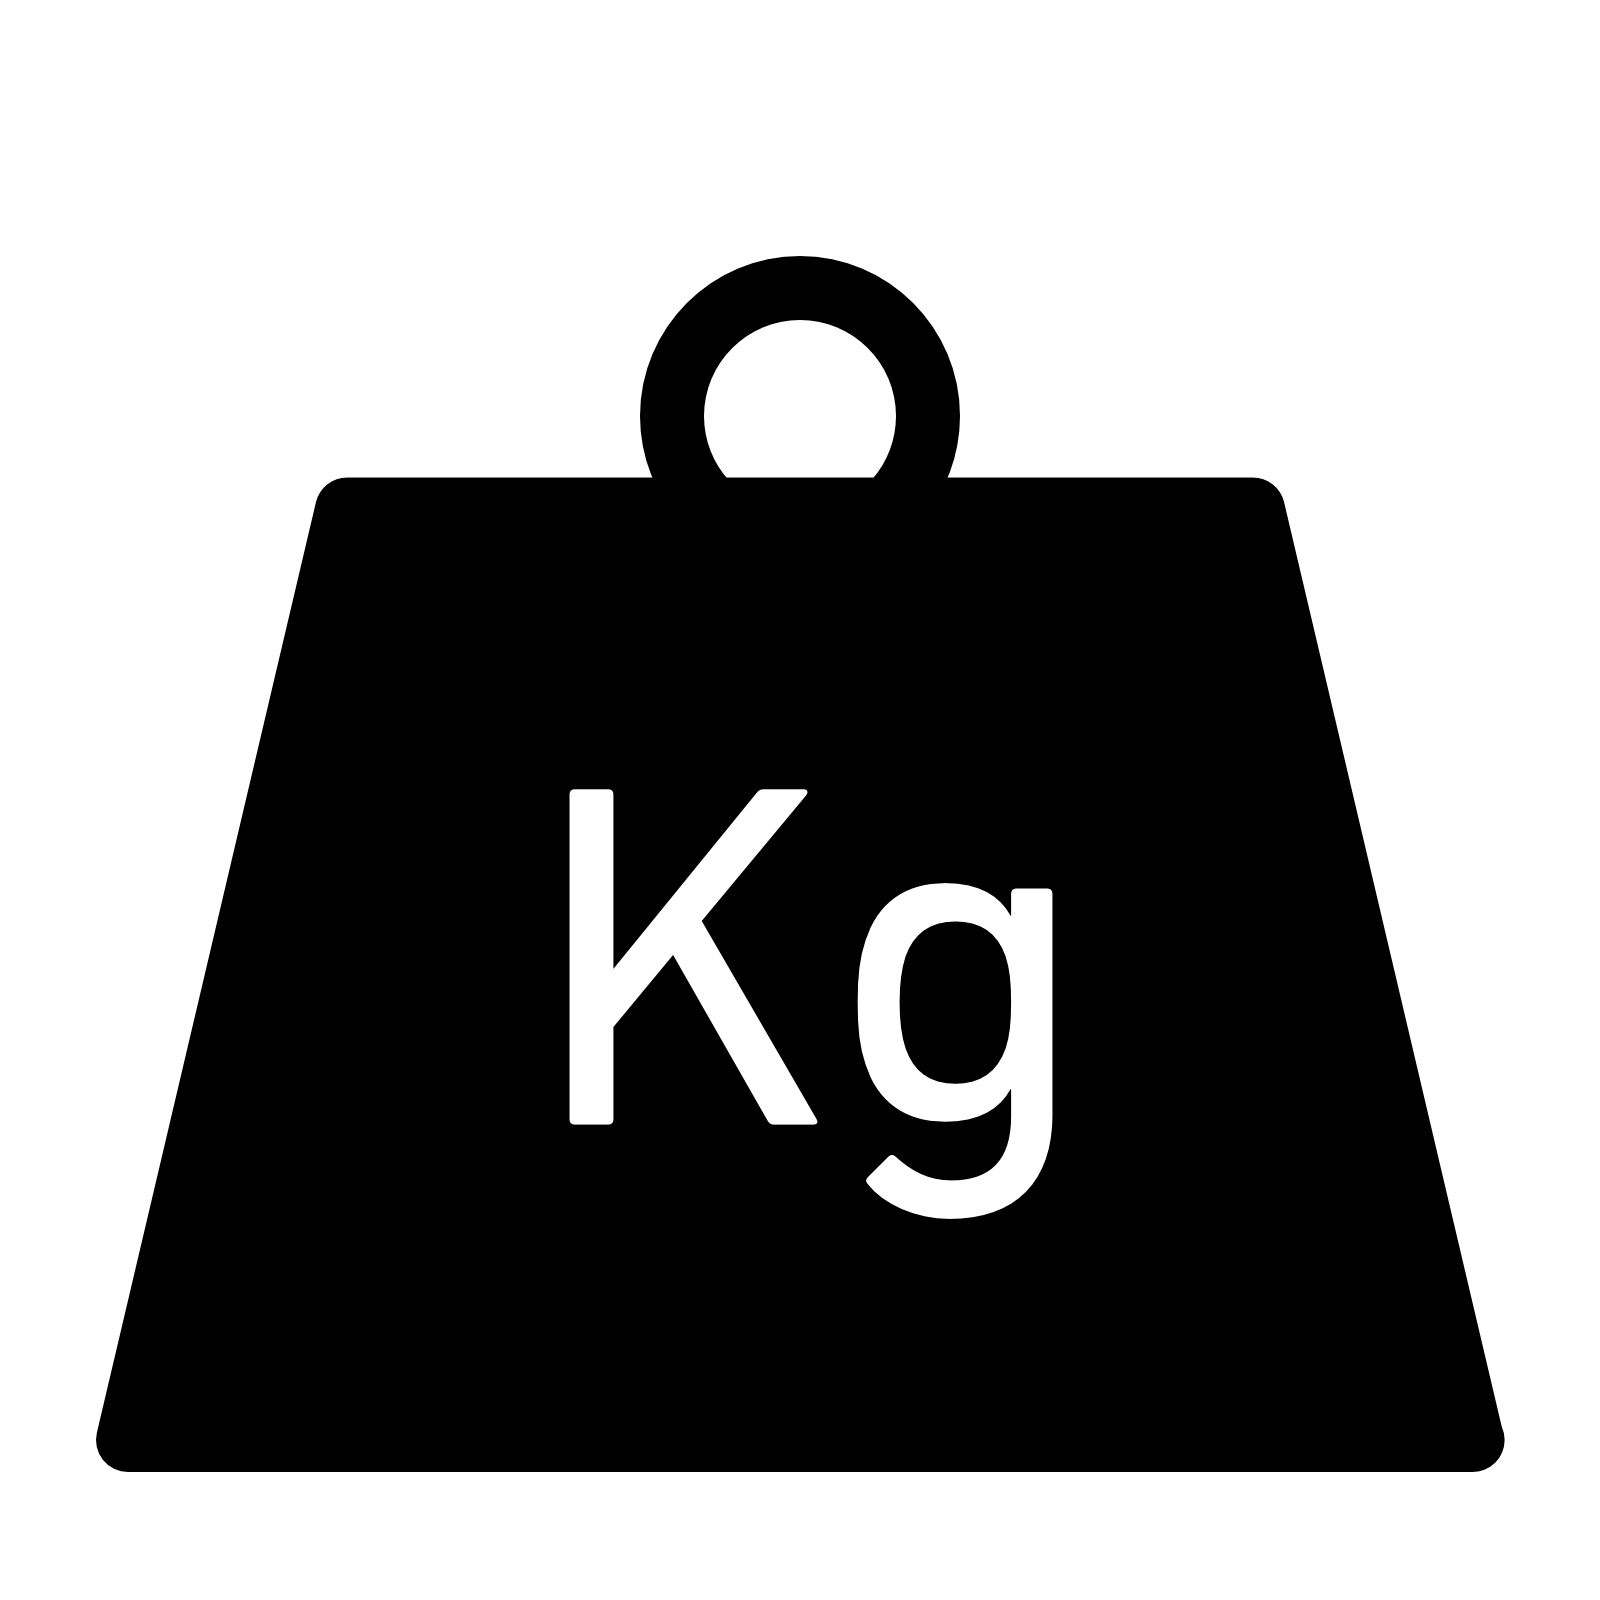 Ton png transparent images. Weight clipart weight plate